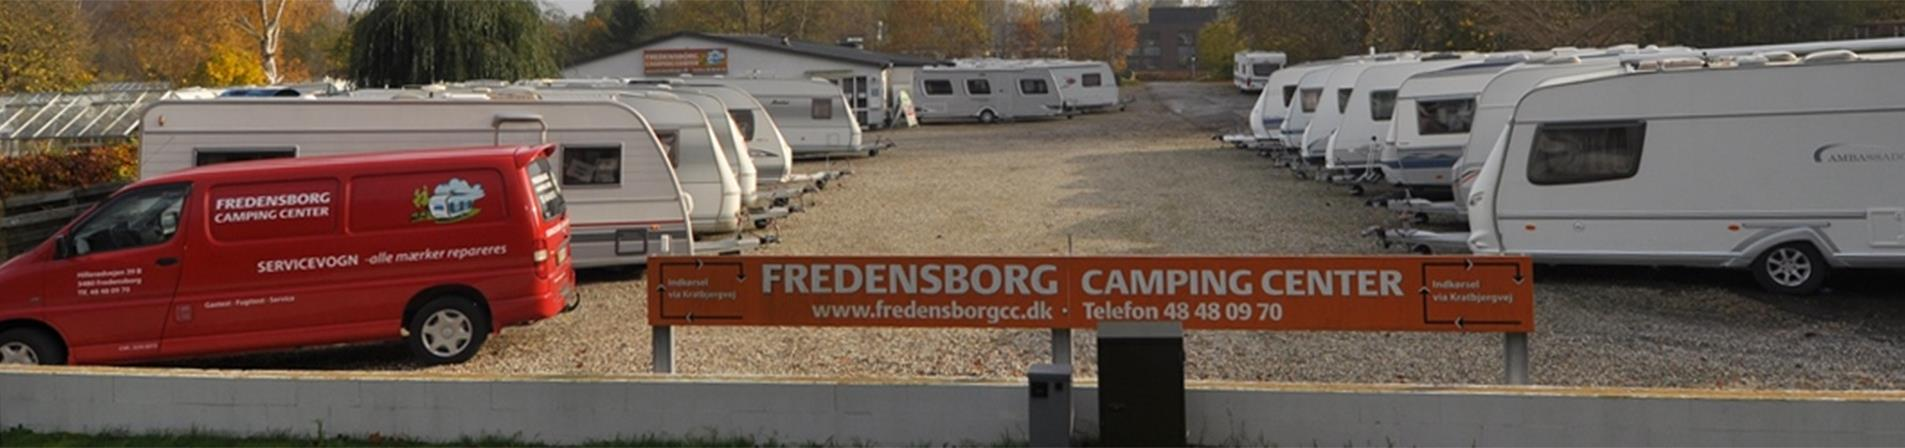 Fredensborg Camping Center